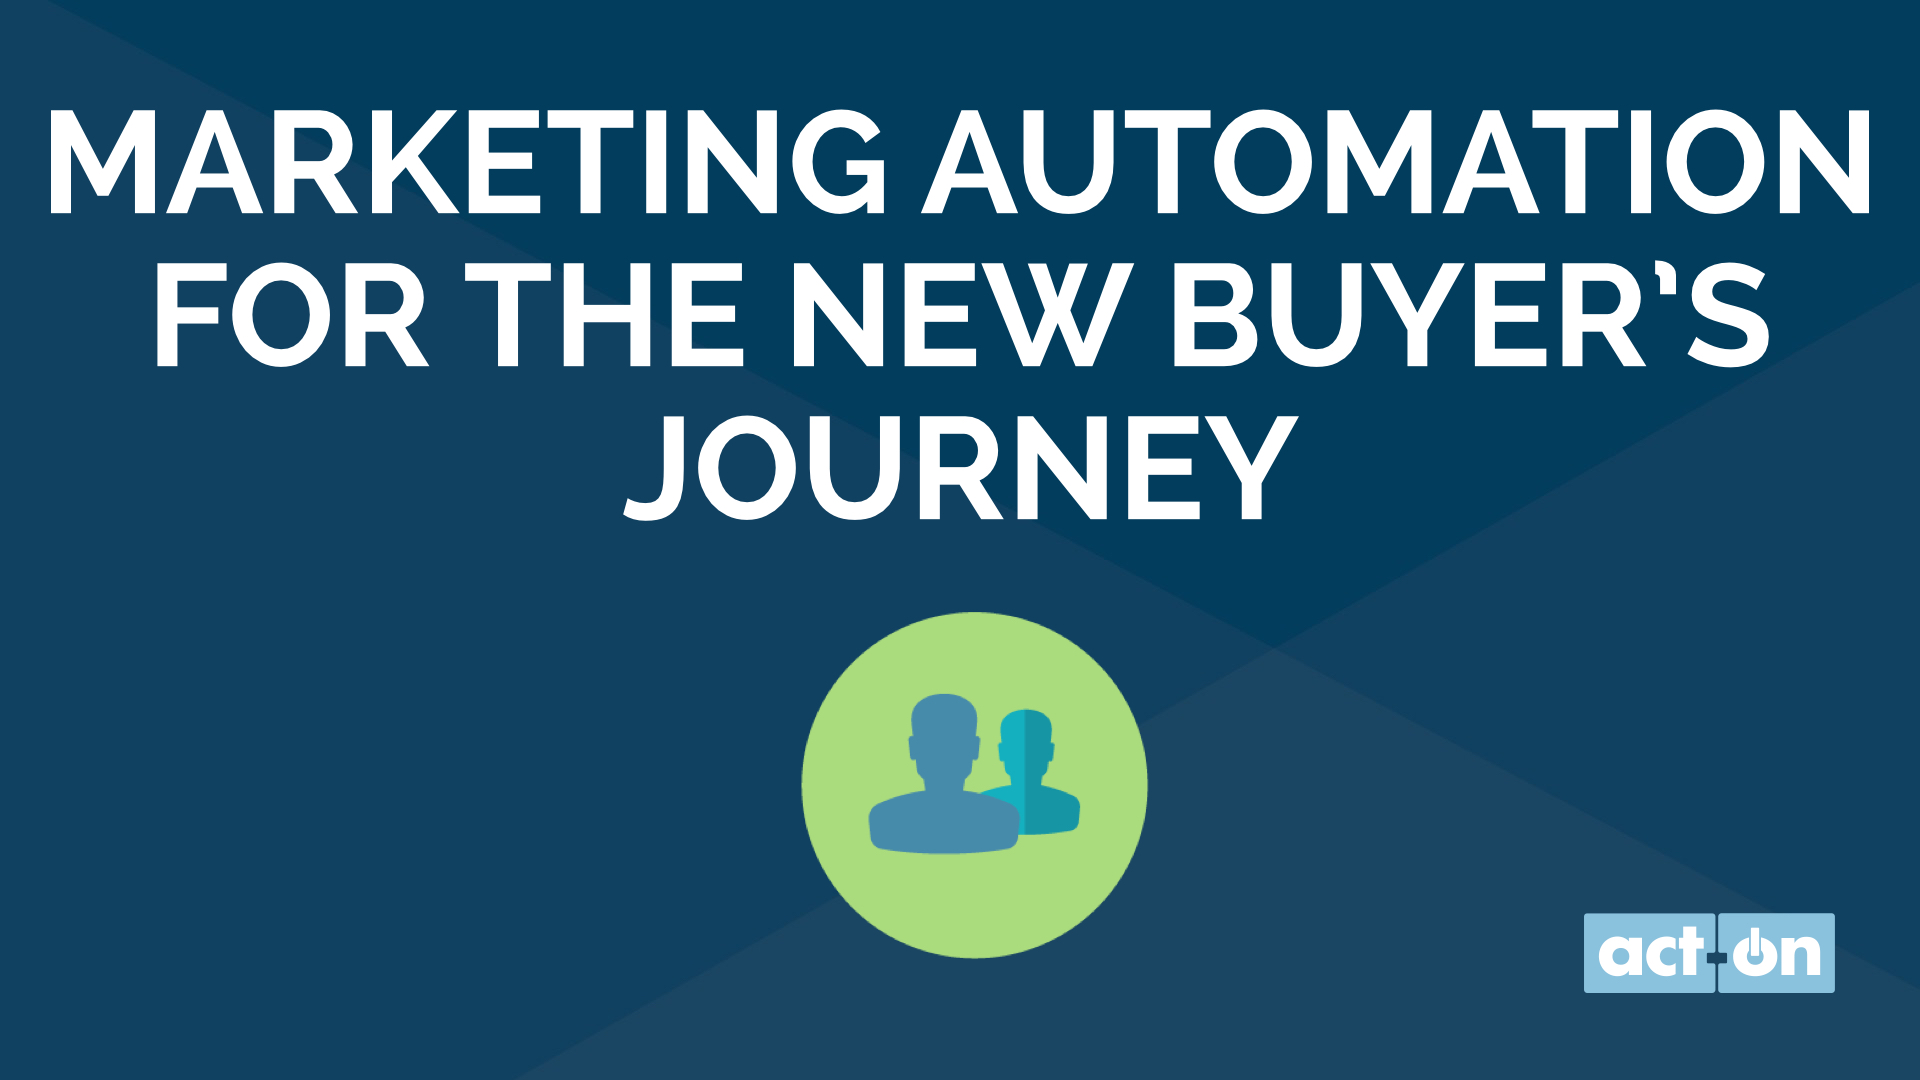 Marketing Automation for the New Buyer's Journey